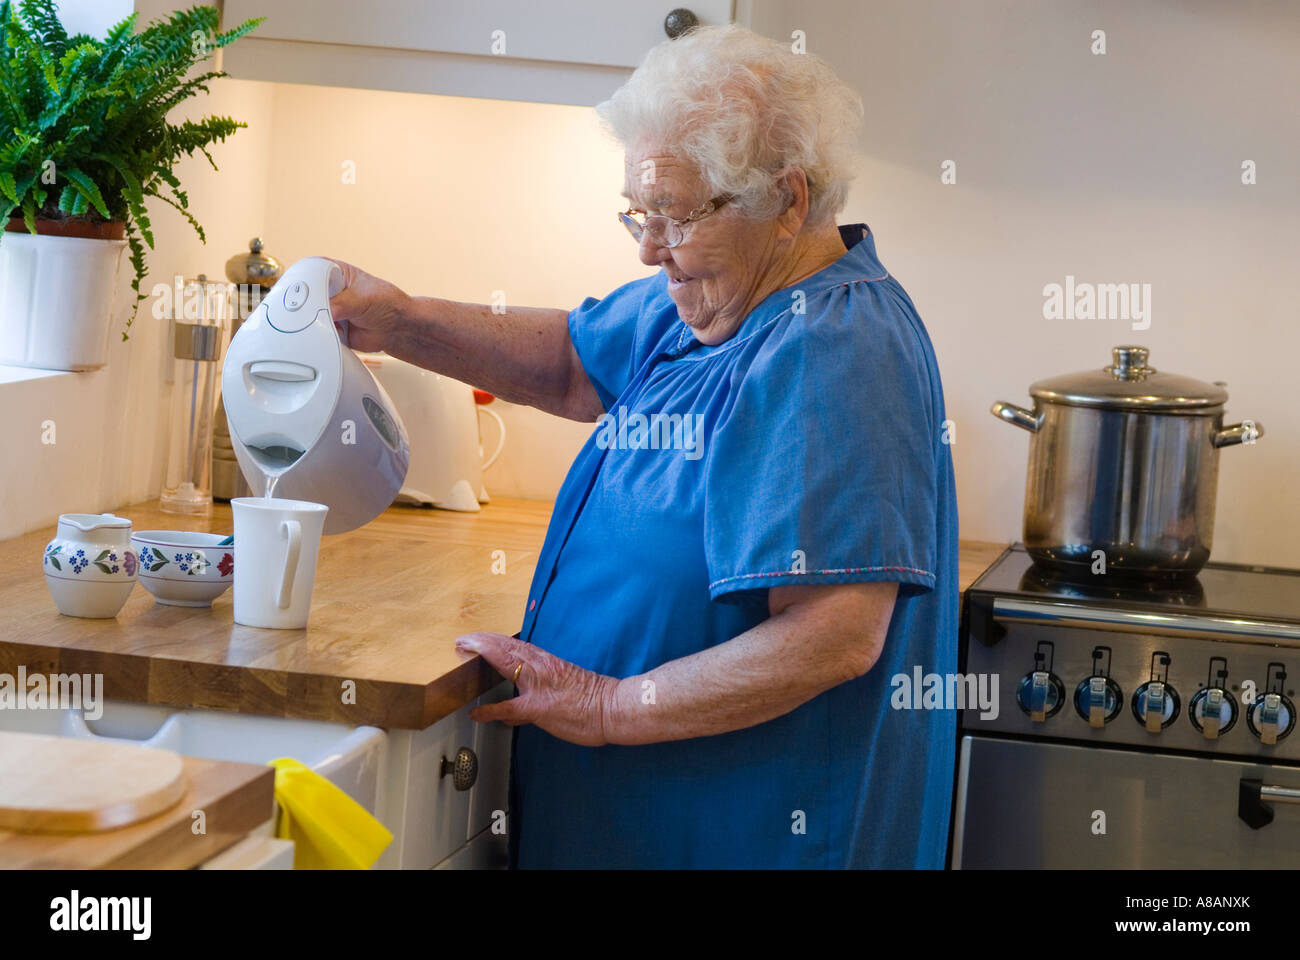 Independent elderly lady making a cup of tea in her modern home kitchen - Stock Image